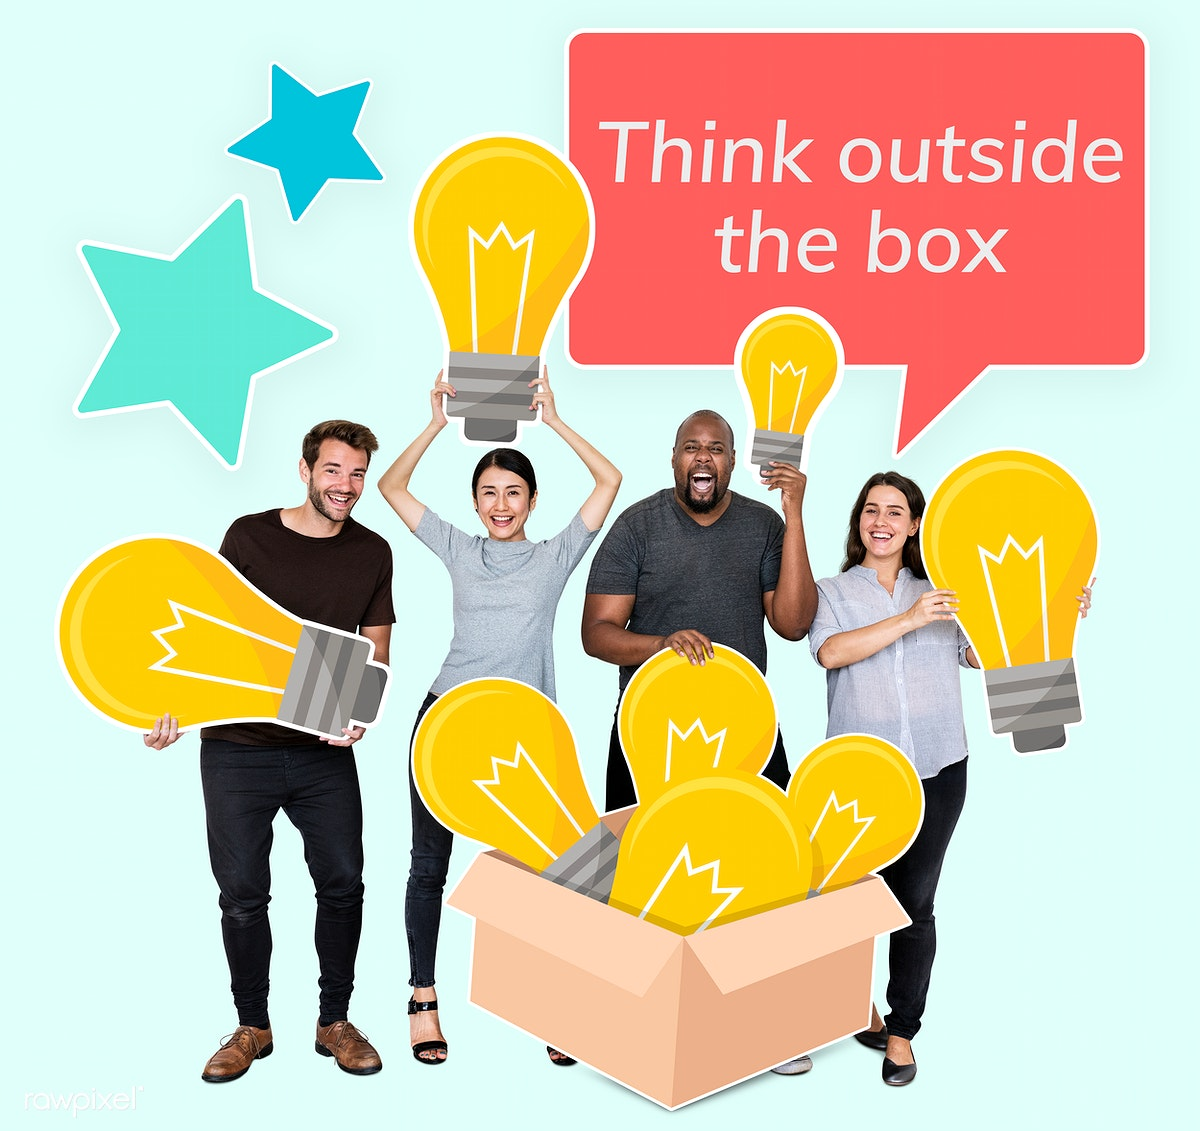 Download premium psd of Think outside the box people with light bulb